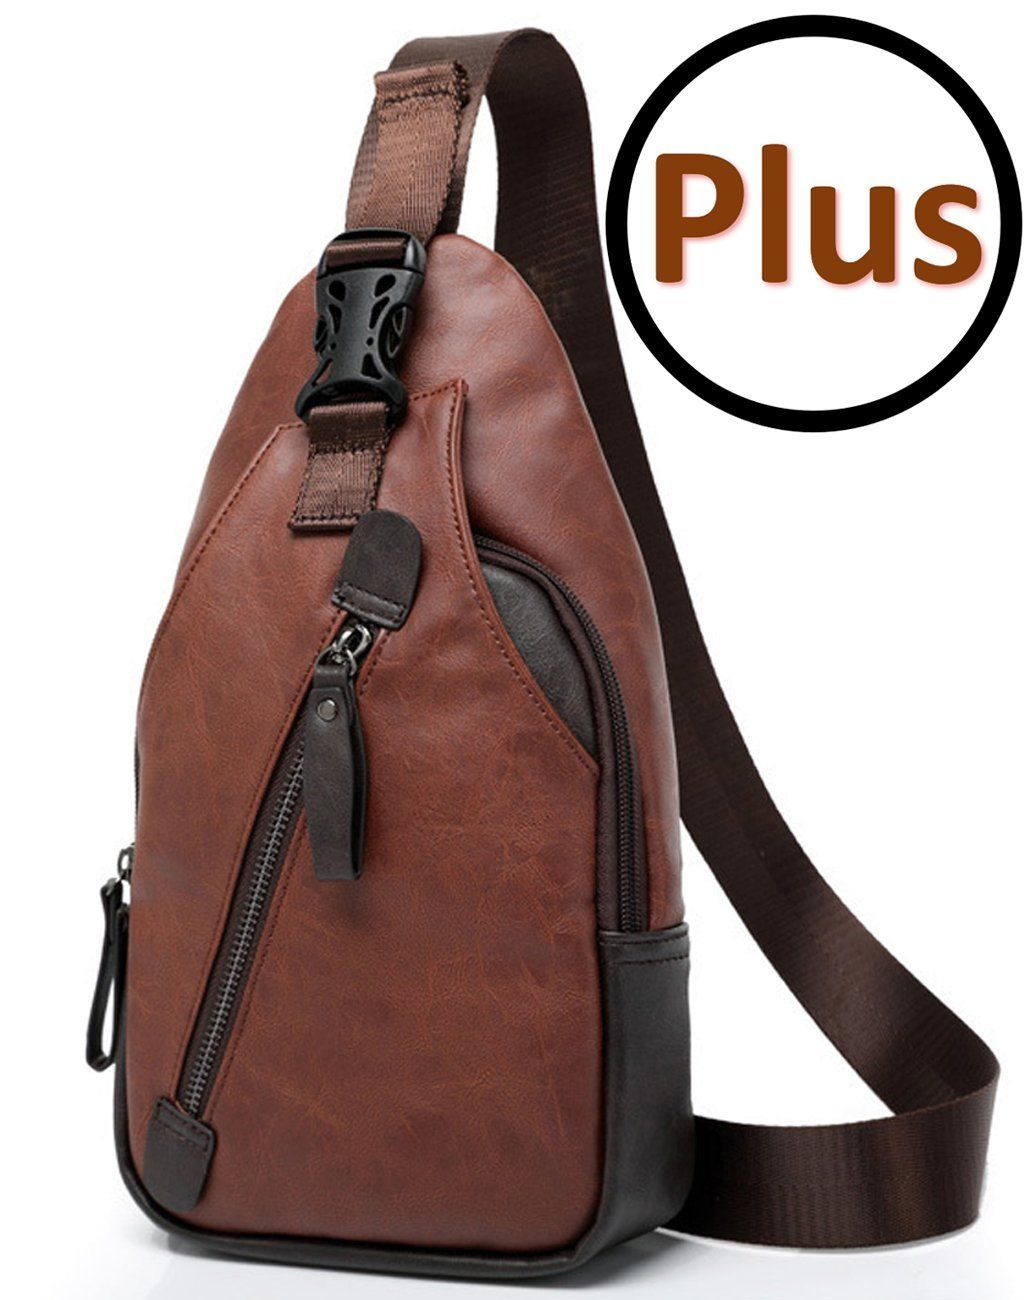 588a5ccd41bb Amazon.com   FREEMASTER Sling Pack Chest Bag Men s Shoulder Backpack PU Bag  Outdoor Cross Body Bags Retro Bag Walking Hiking Camping Gym Cycling  Daypack ...